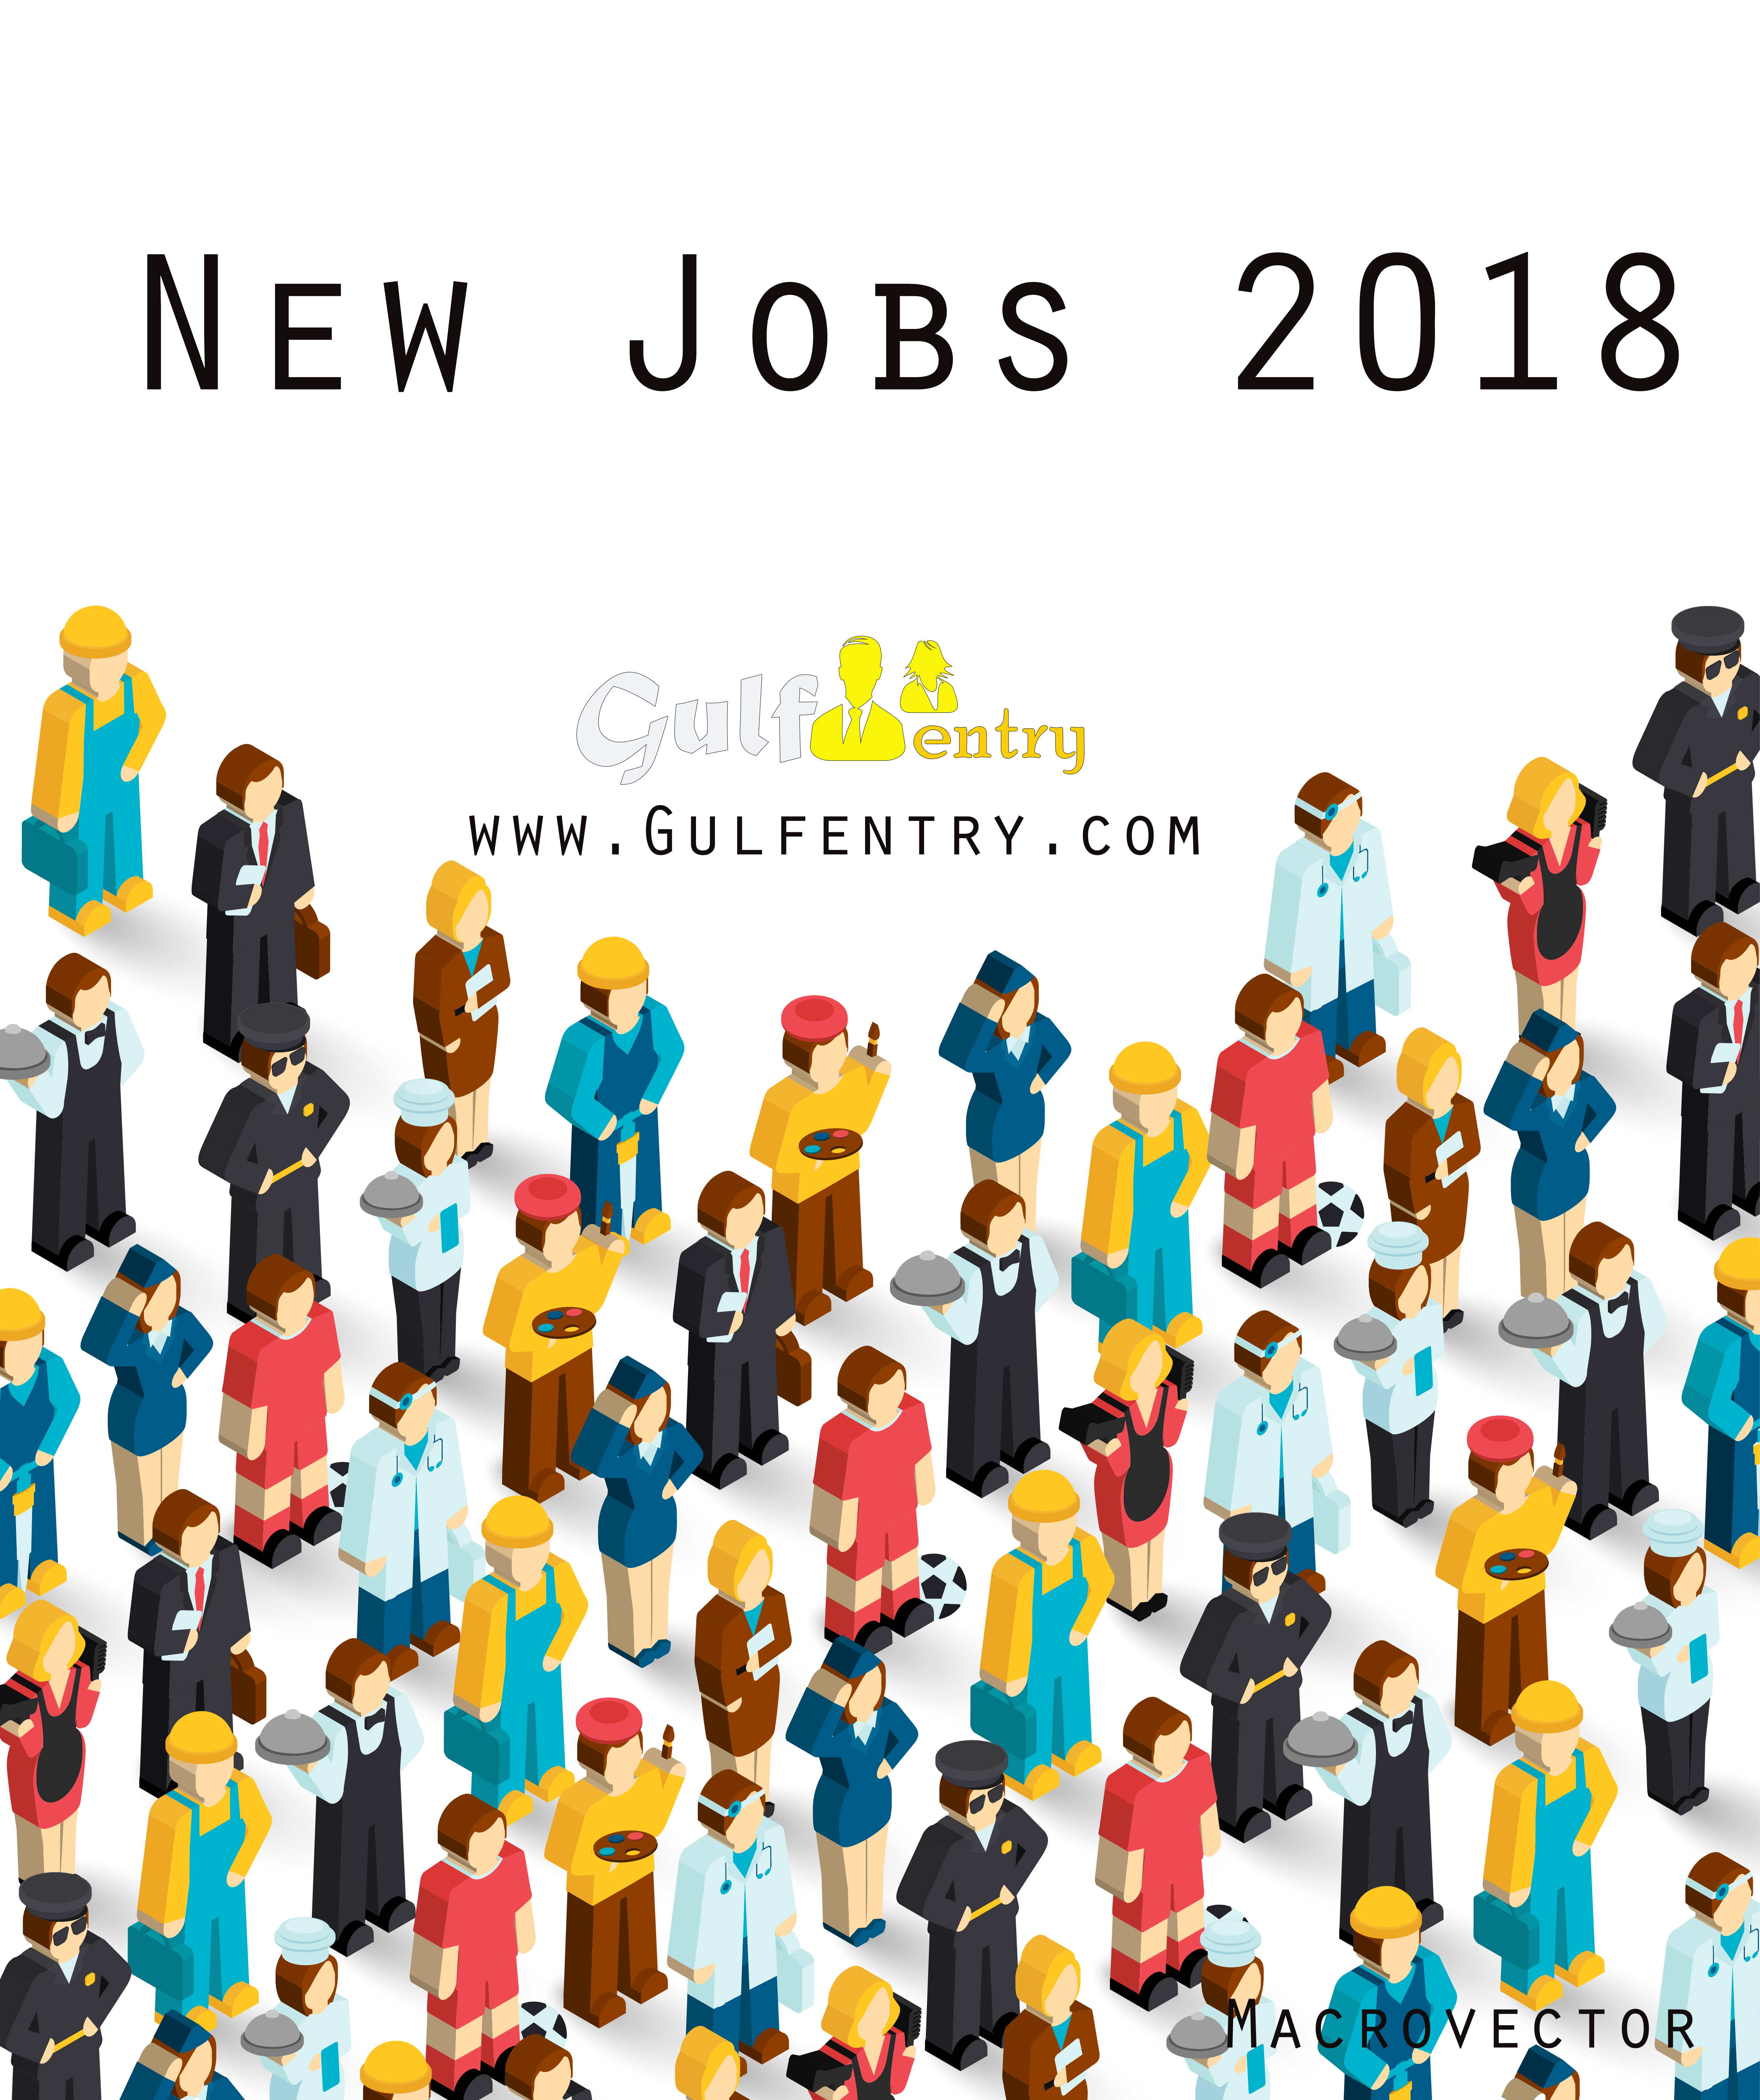 New jobs Opening UAE,2018 - Gulf Job Entry in the Middle